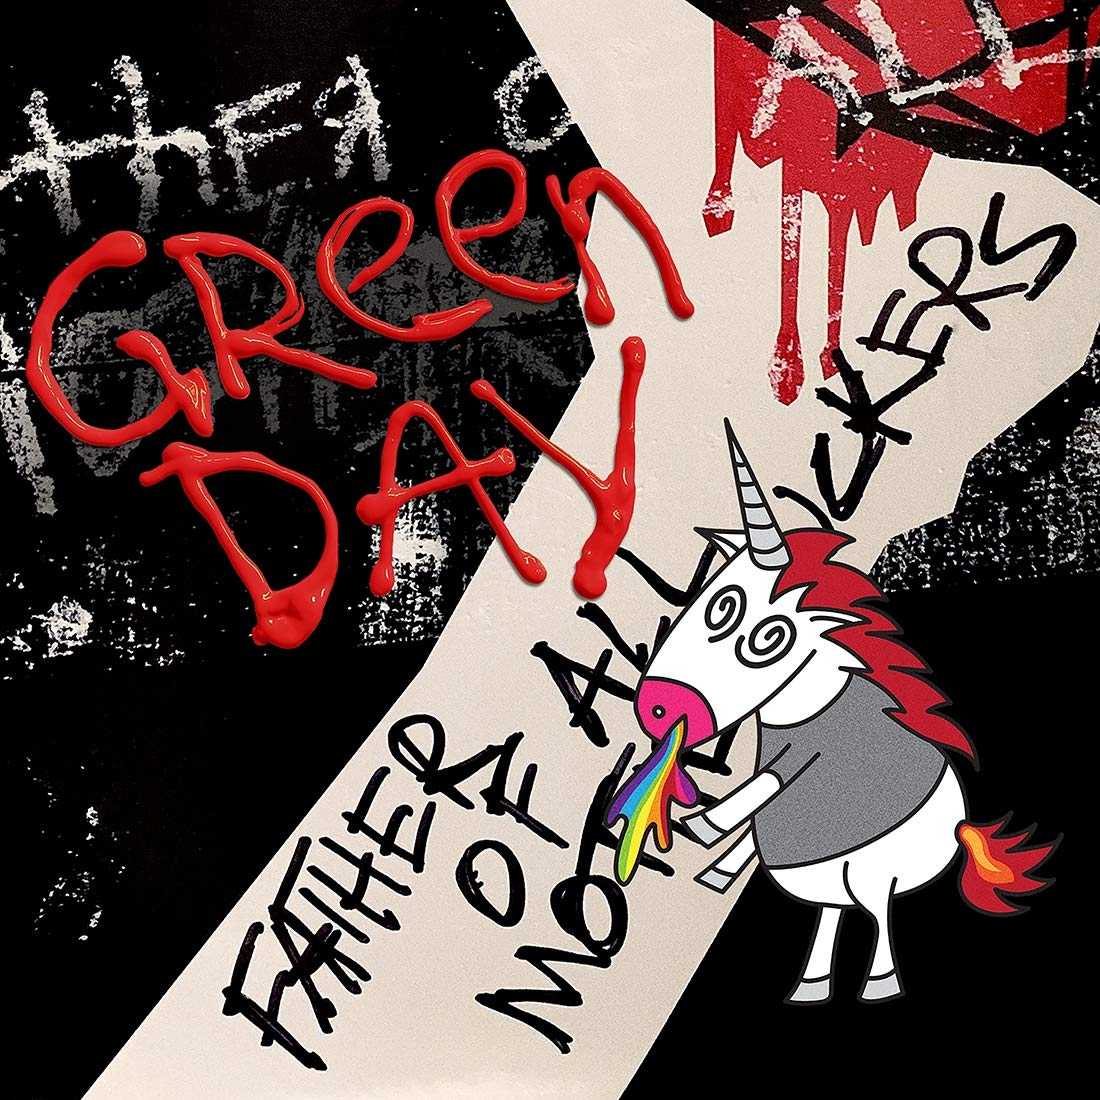 Green Day: Father Of All... (2020) Book Cover